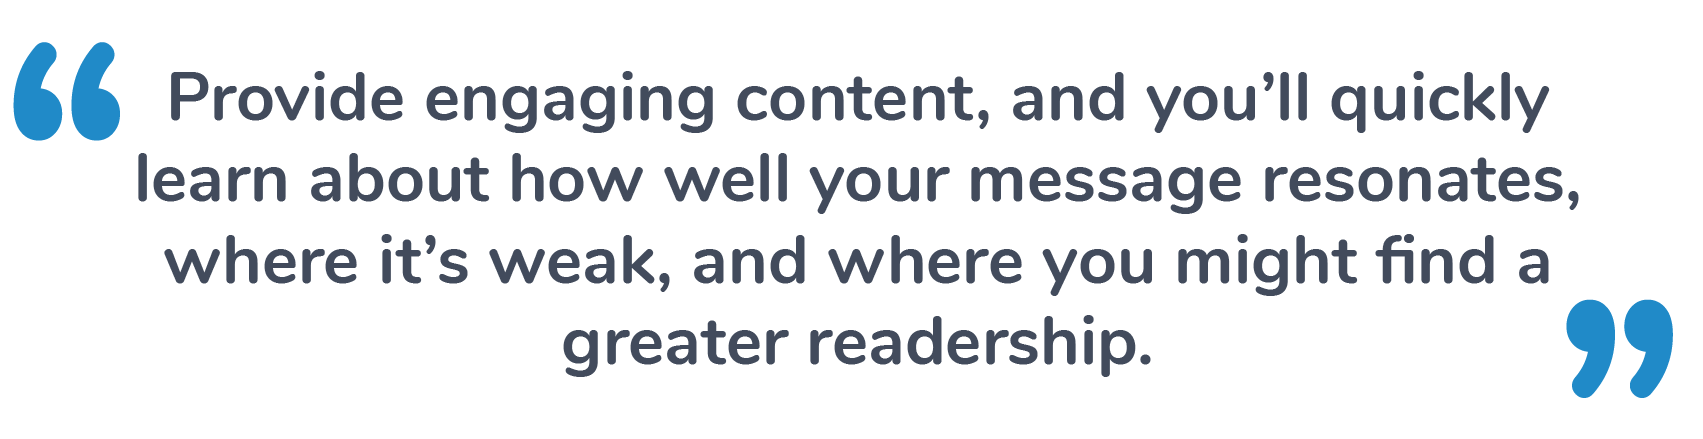 Provide Engaging Content Marketing